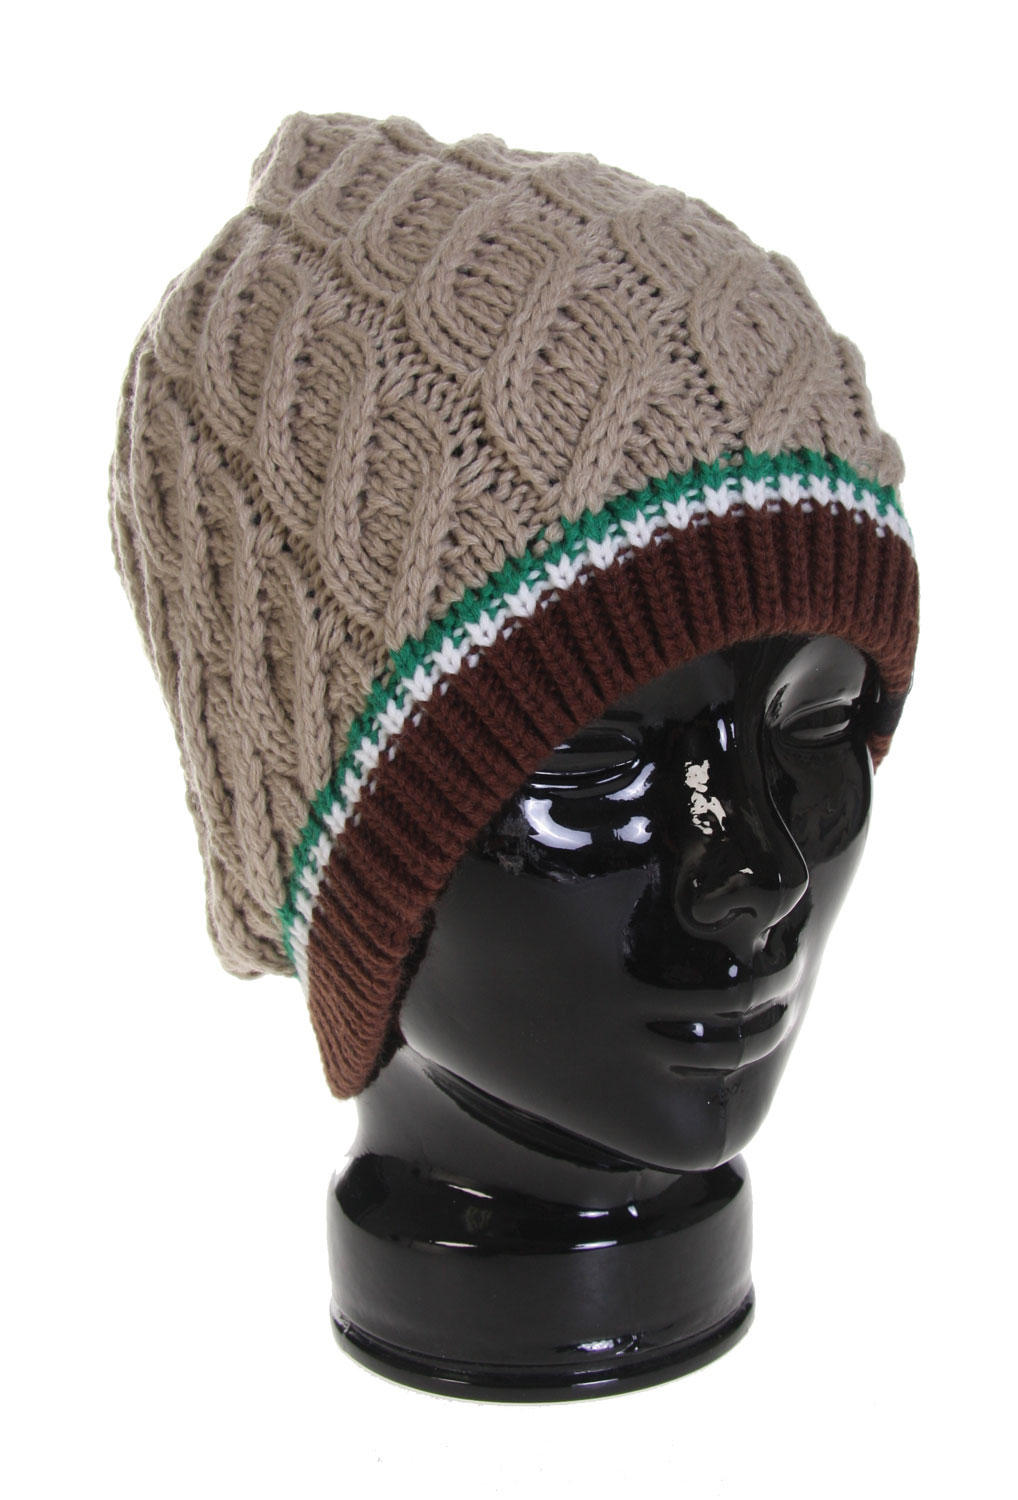 Snowboard The Burton Shanghai Surprise Beanie - 100% Acrylic / Textured Knit Beanie with Stripes at Opening / Slouchy Fit - $13.96